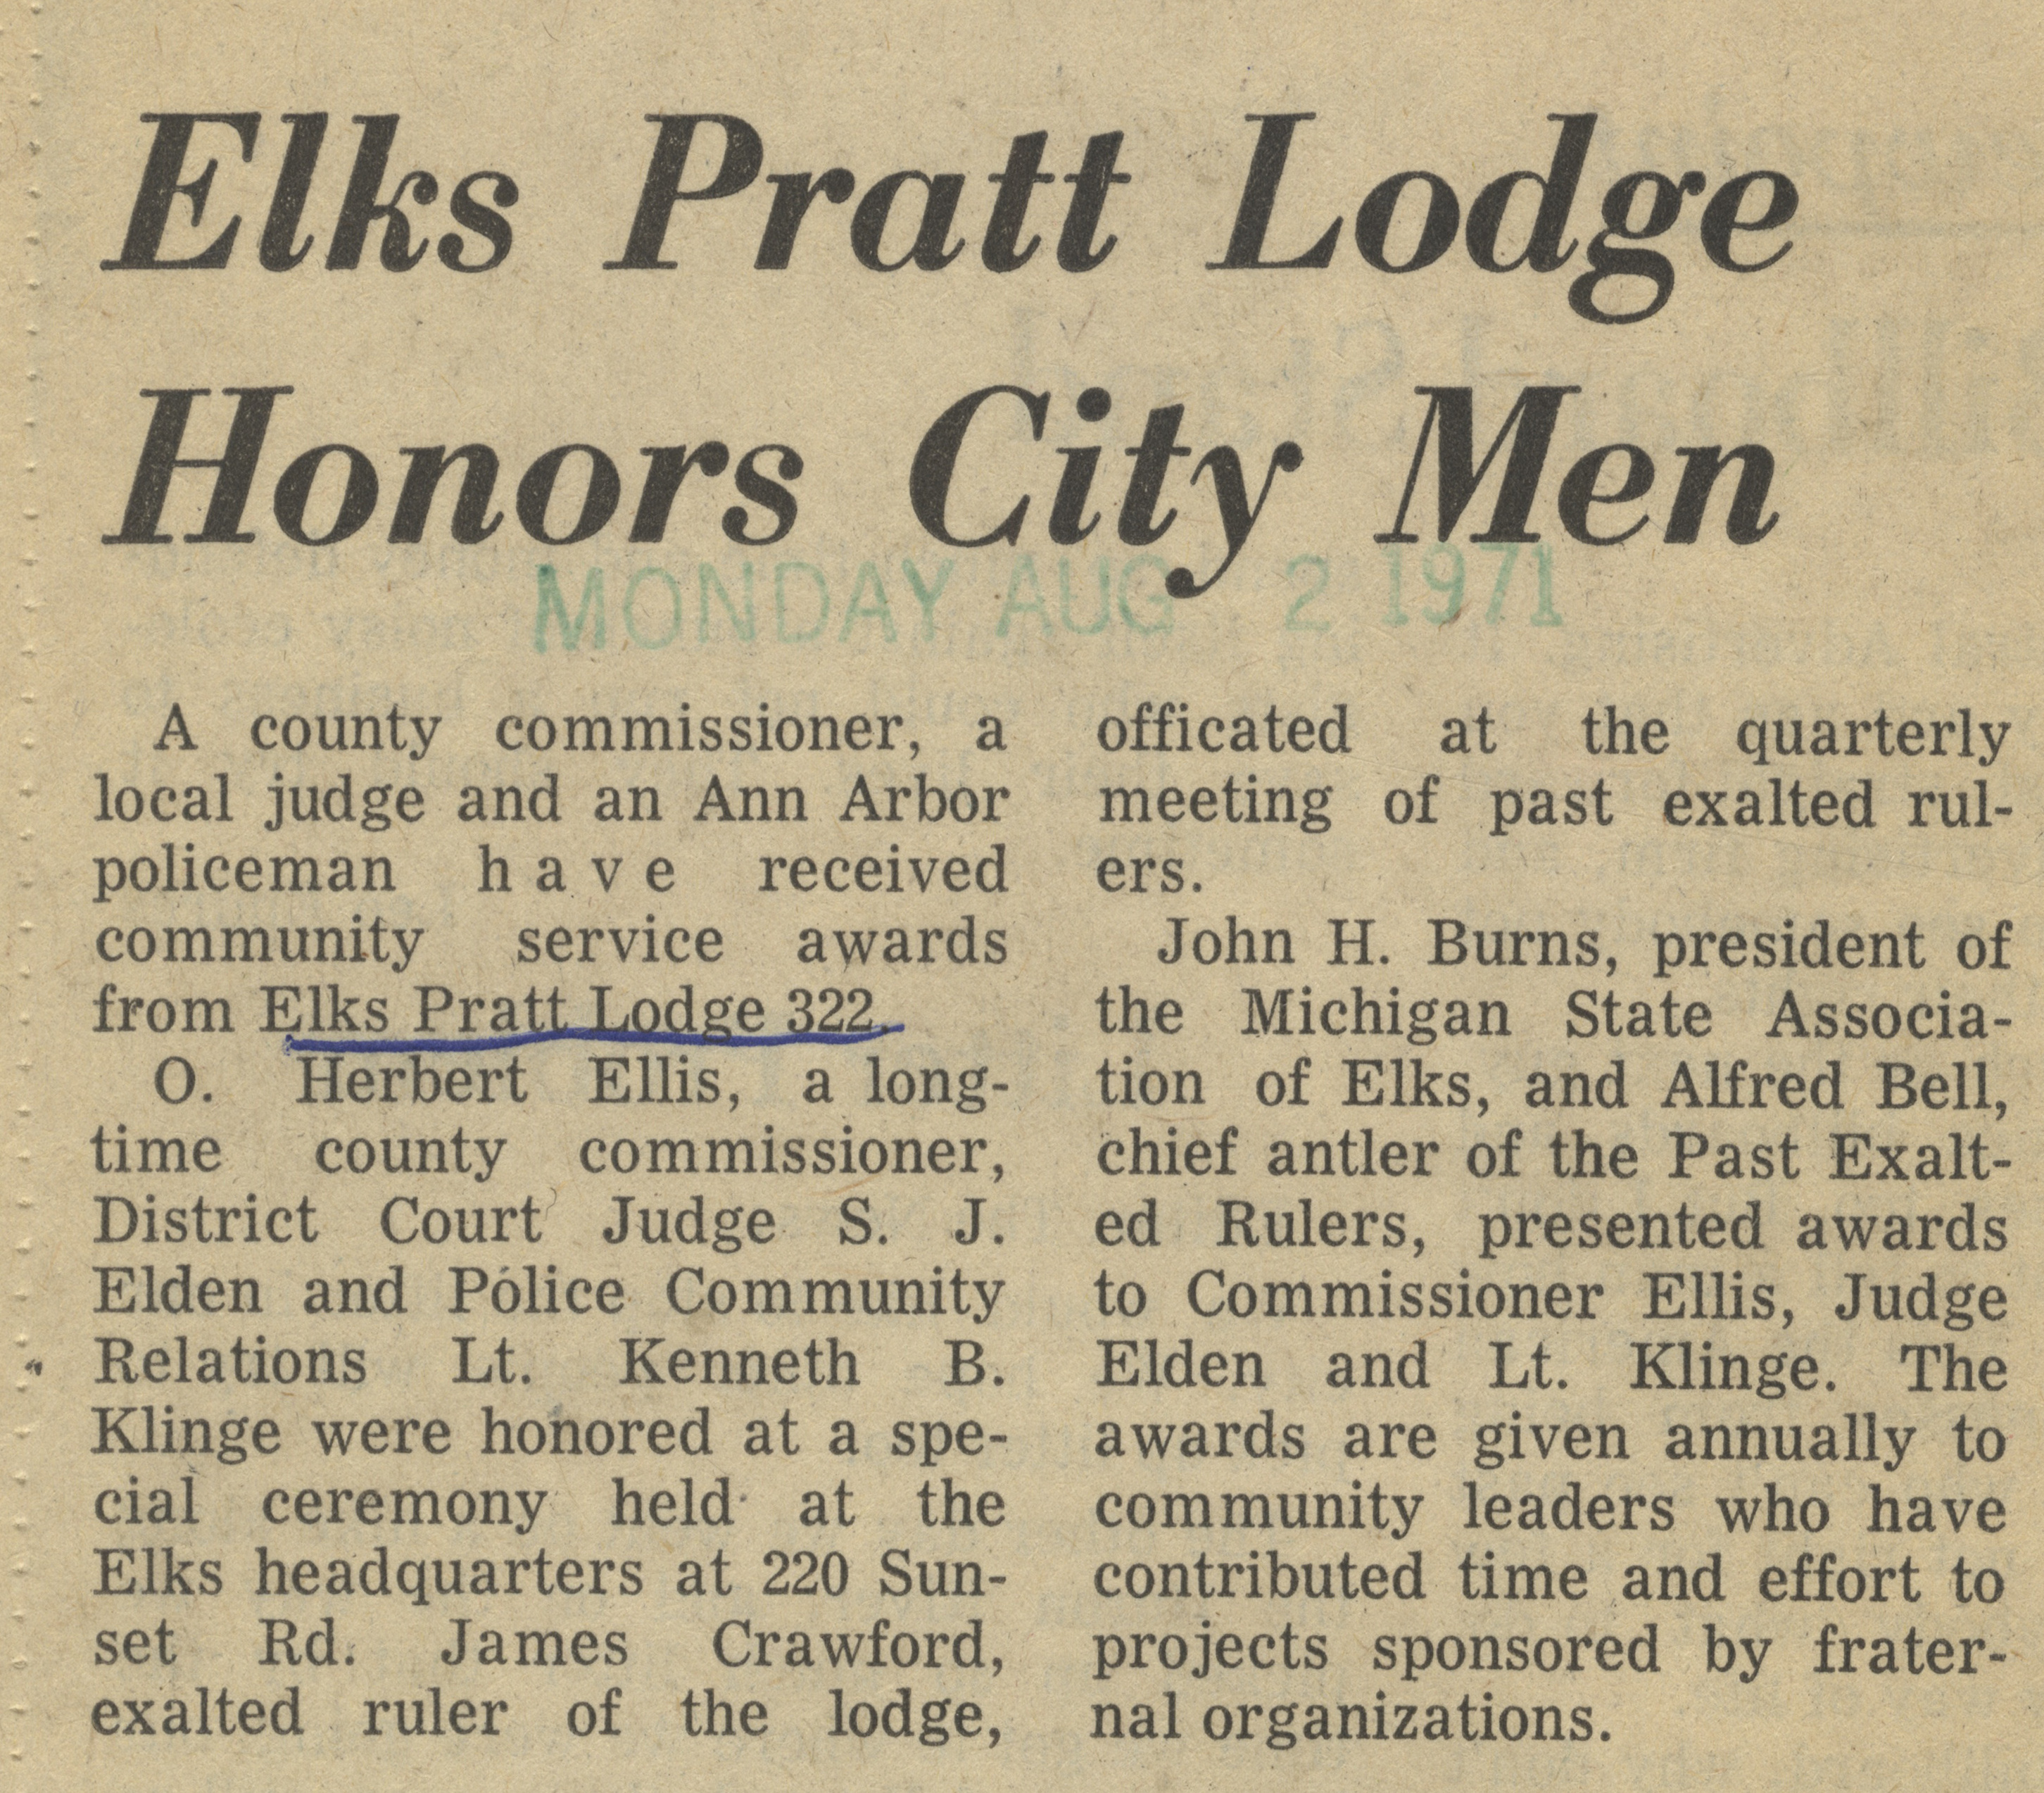 Elks Pratt Lodge Honors City Men image